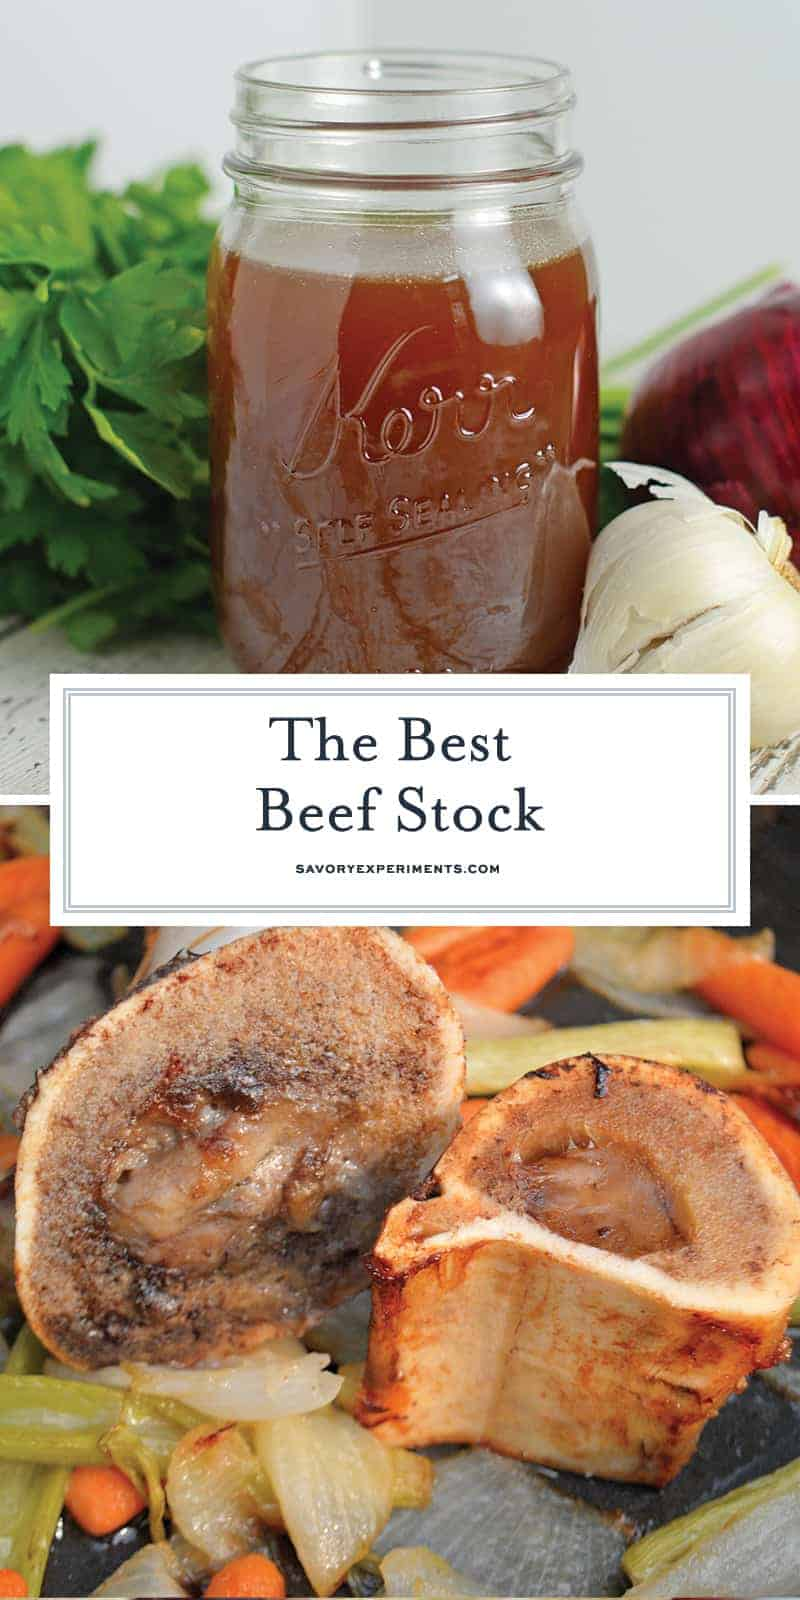 The Best Beef Stock recipe made with herbs and vegetables. Freezer friendly and full of flavor, you'll never buy store bought again! #beefbroth #beefstock #howtomakestock www.savoryexperiments.com